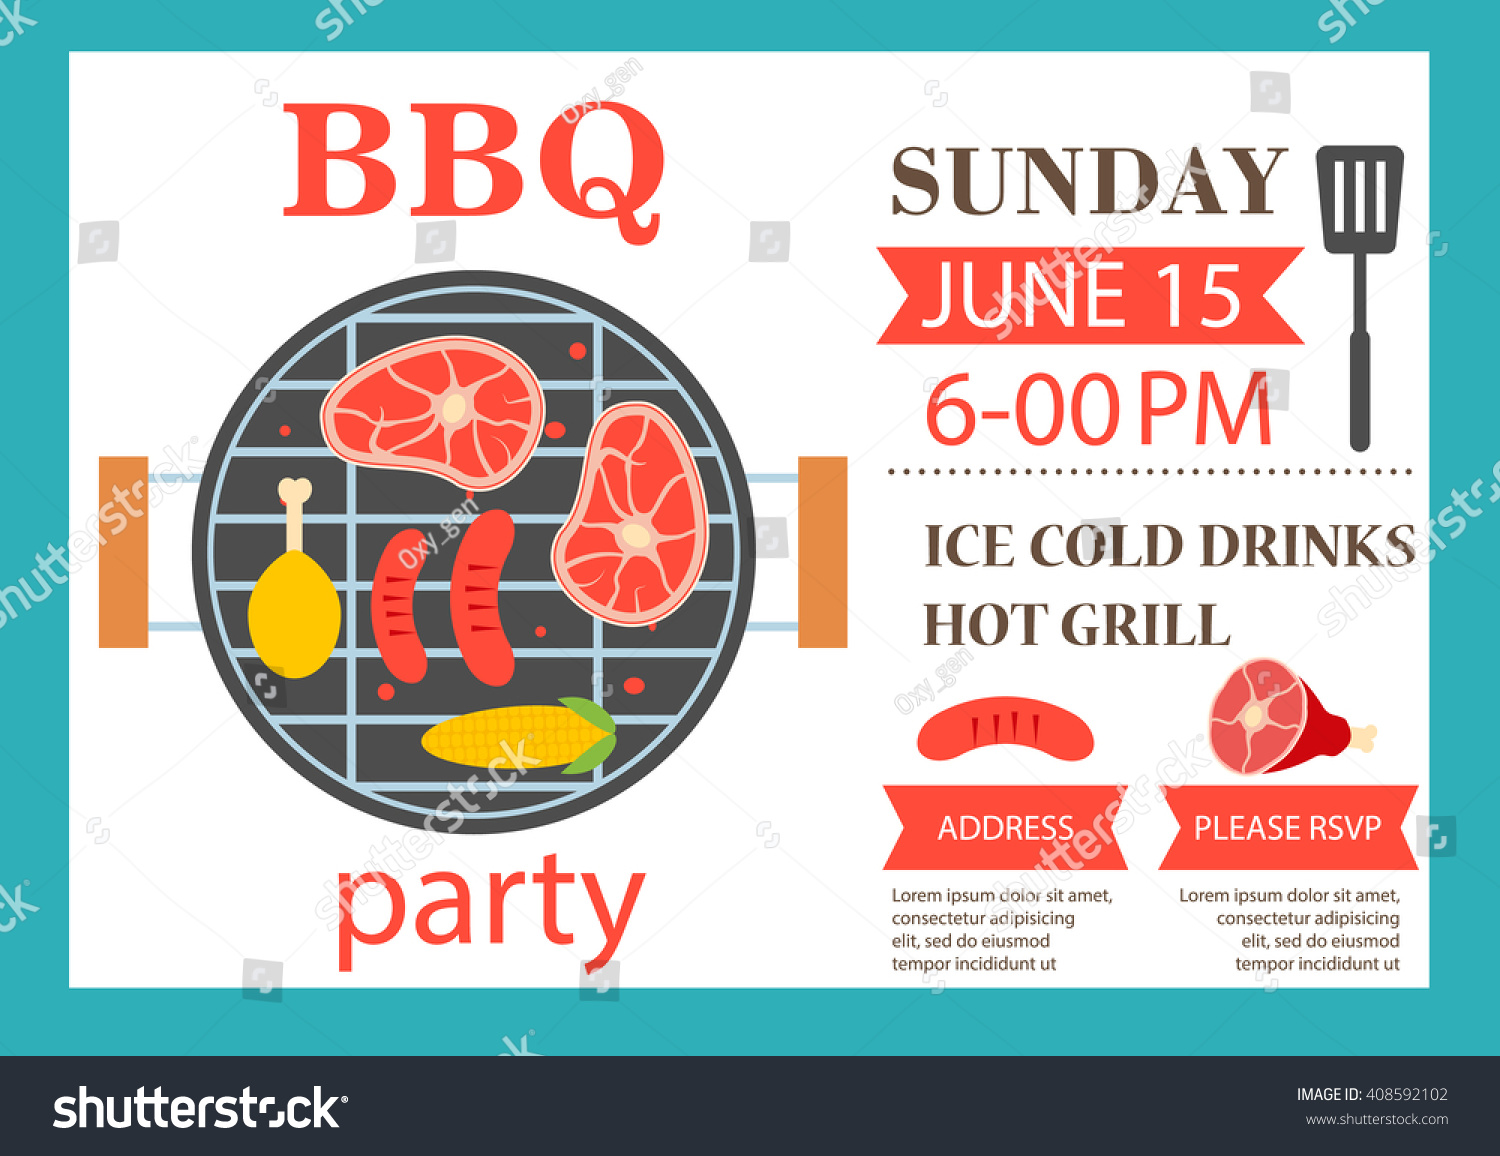 barbecue invitation template sample cv resume barbecue invitation template diy place card template printable print bbq party invitation barbecue